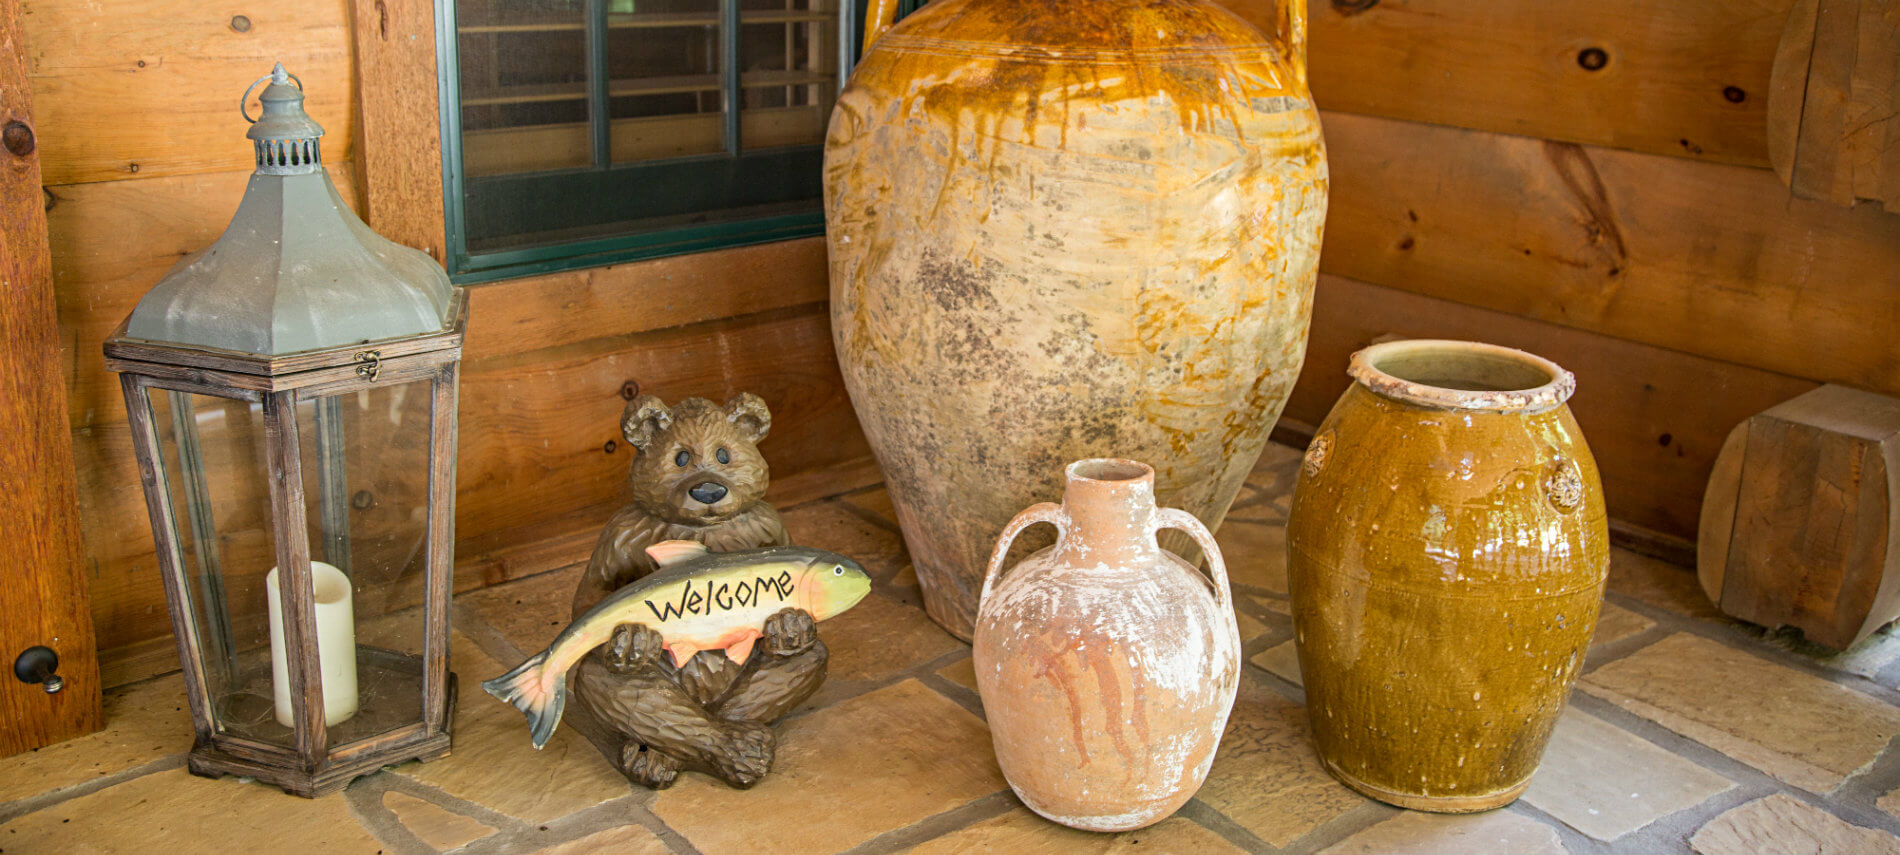 Different sized clay pots on porch. Wooden bear that is holding a trout which says Welcome on it is sitting by pots. A lantern with candle sits by the door